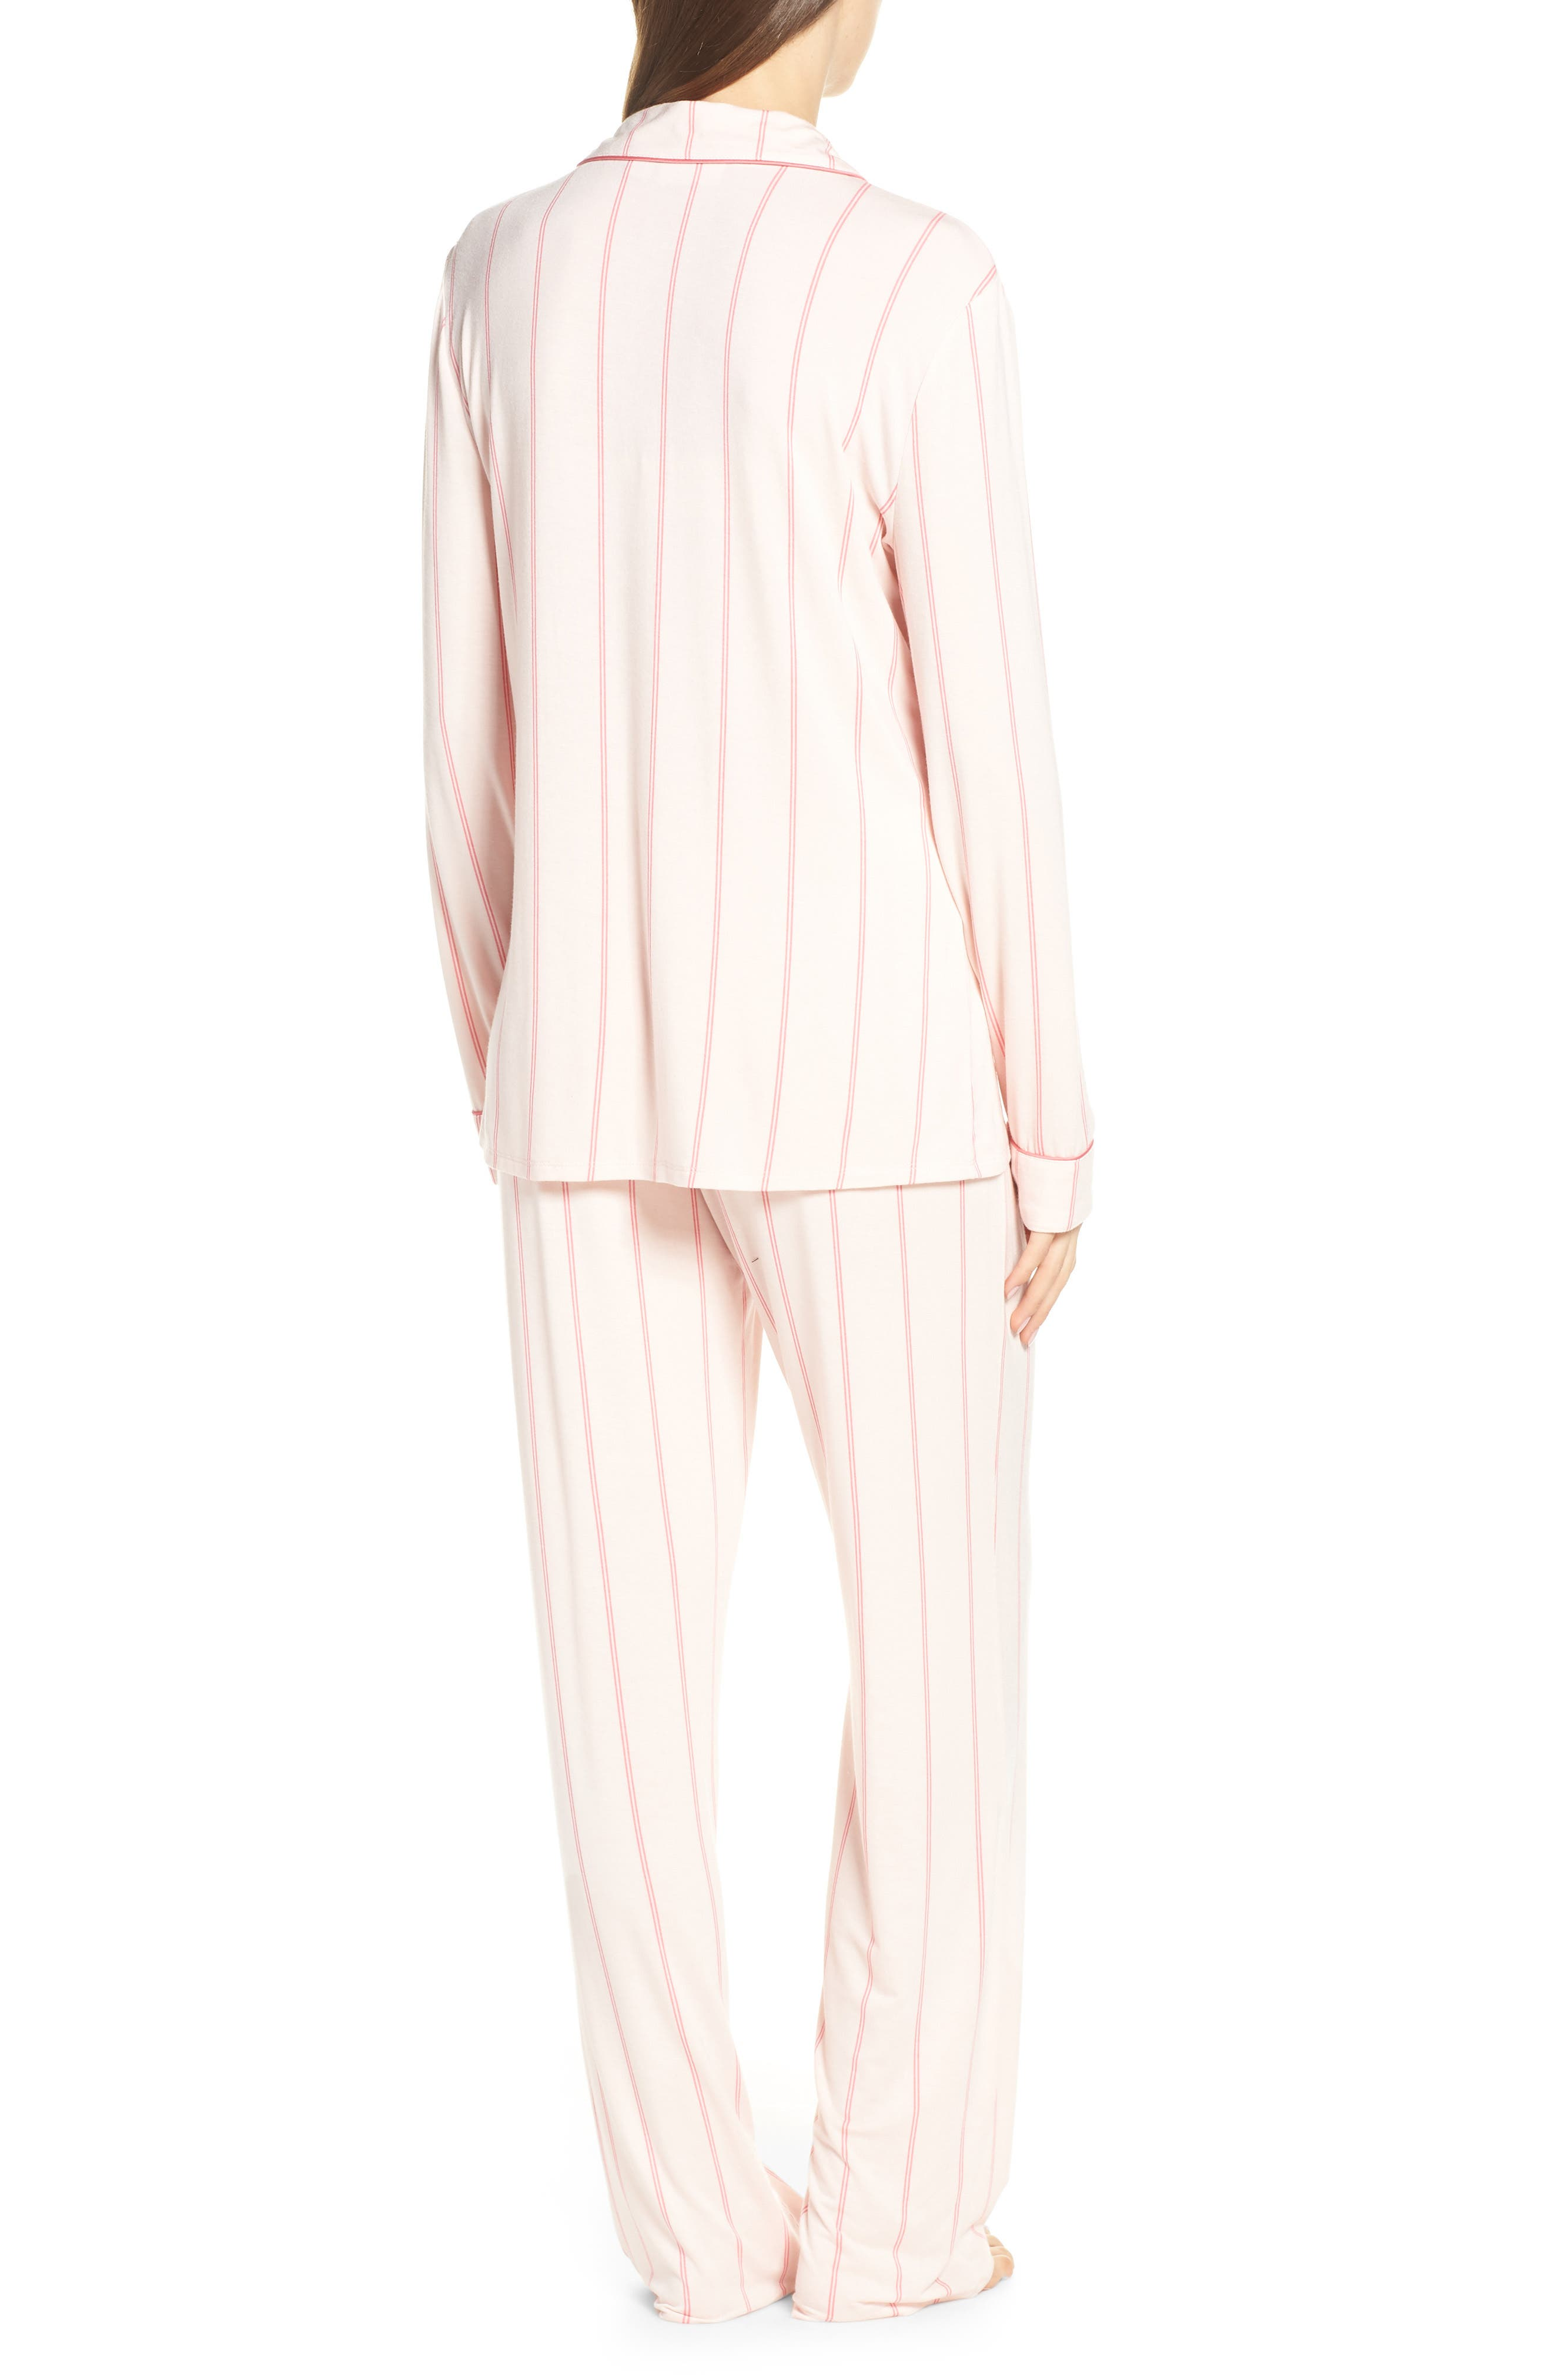 NORDSTROM LINGERIE, Moonlight Pajamas, Alternate thumbnail 2, color, PINK CRYSTAL MICRO STRIPE